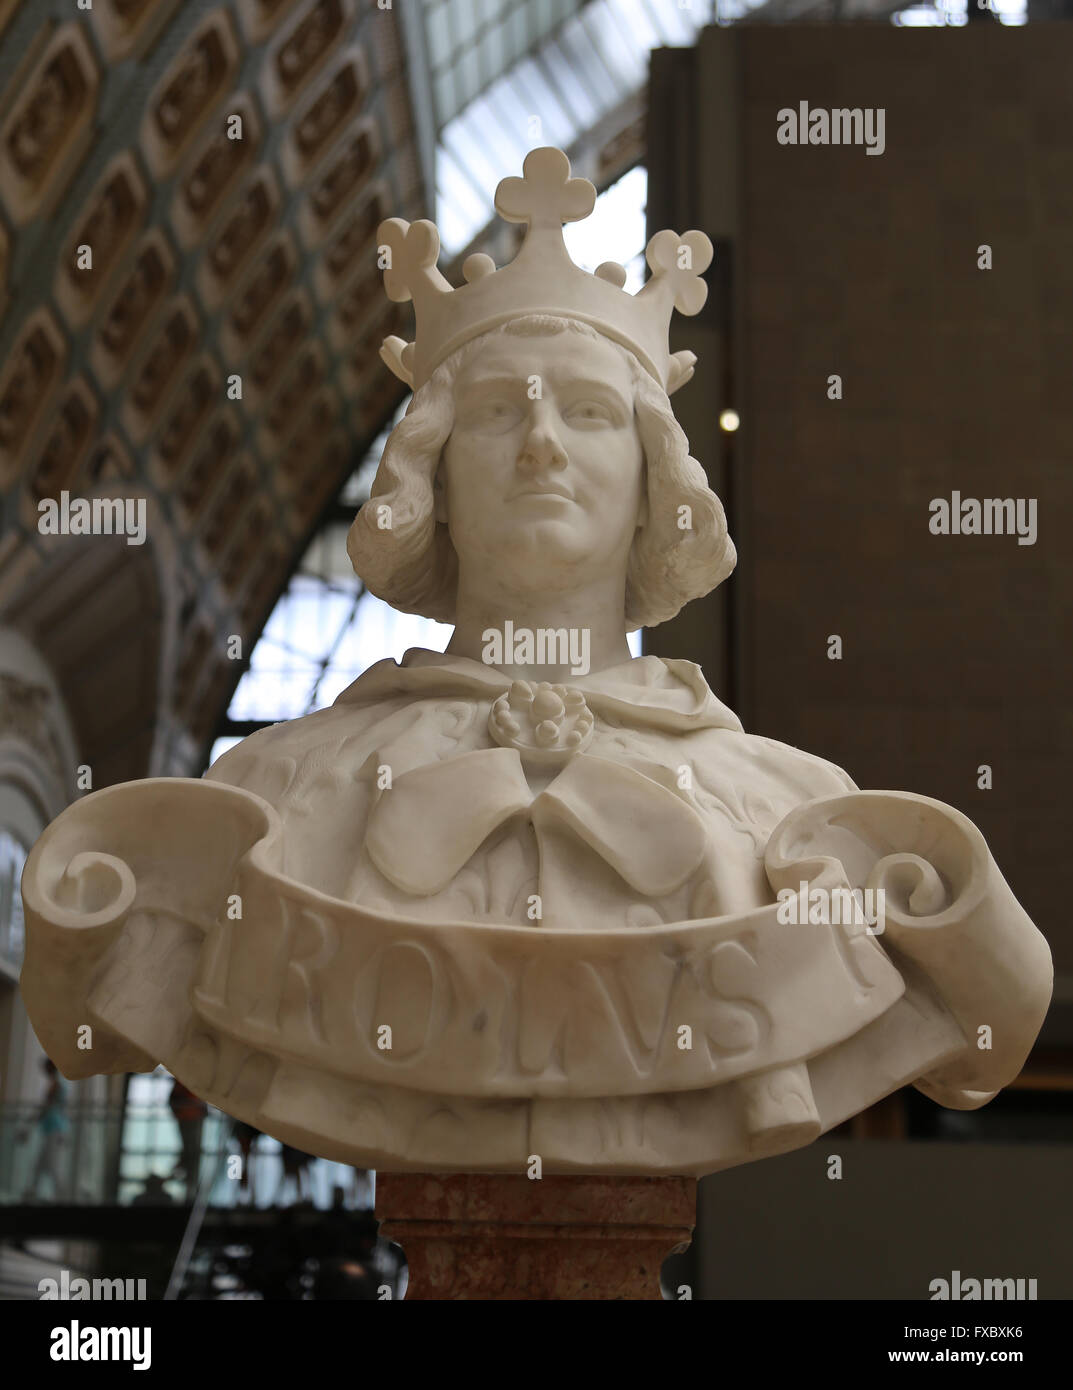 Charles V of France (1338-1380), The Wise. House of Valois. Bust by Emmanuel Fremiet (1824-1910). Orsay Museum. - Stock Image